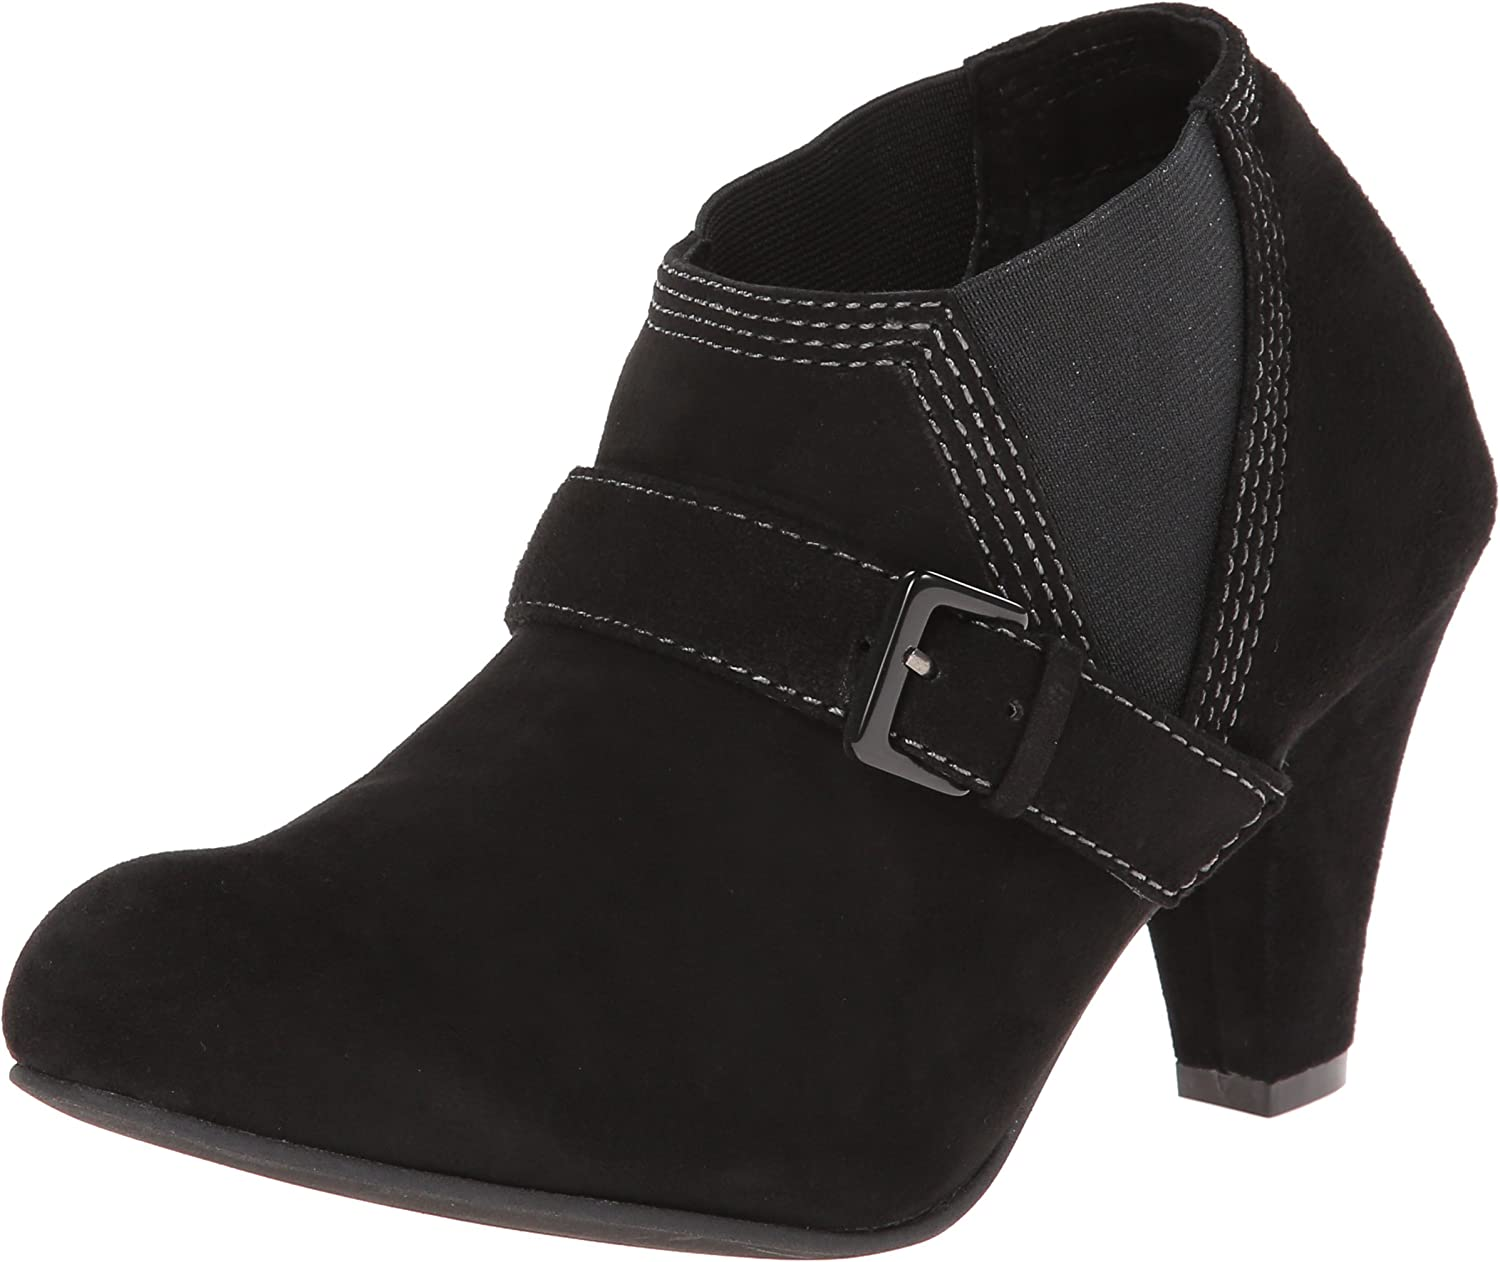 All Black Women's Stretch Belted Boot